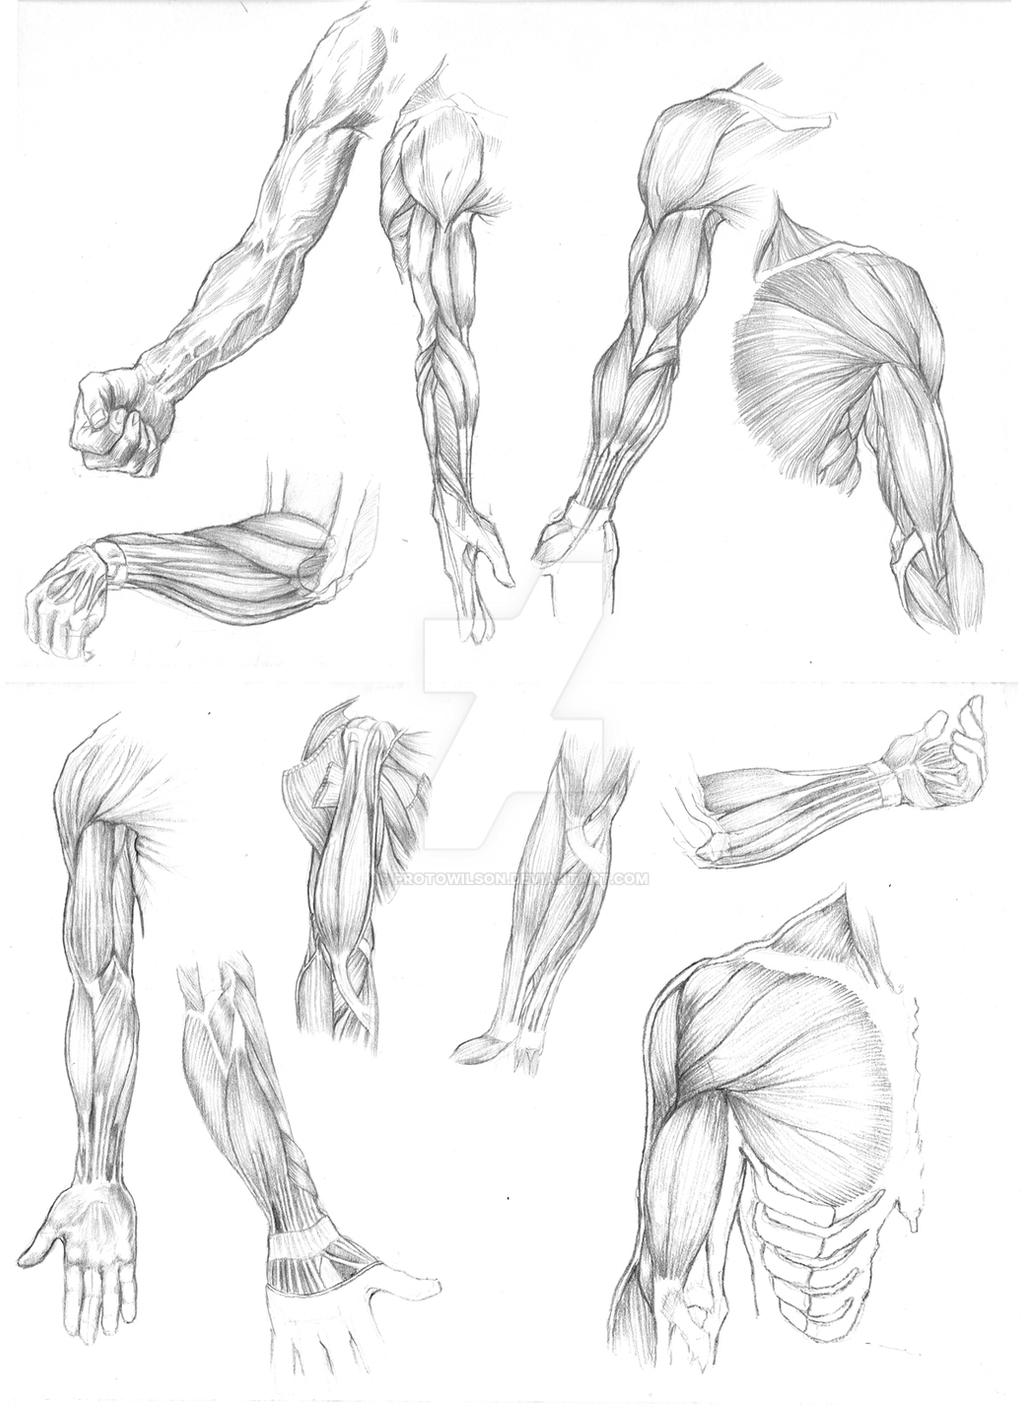 Arm Muscle Studies 01 By Protowilson On Deviantart